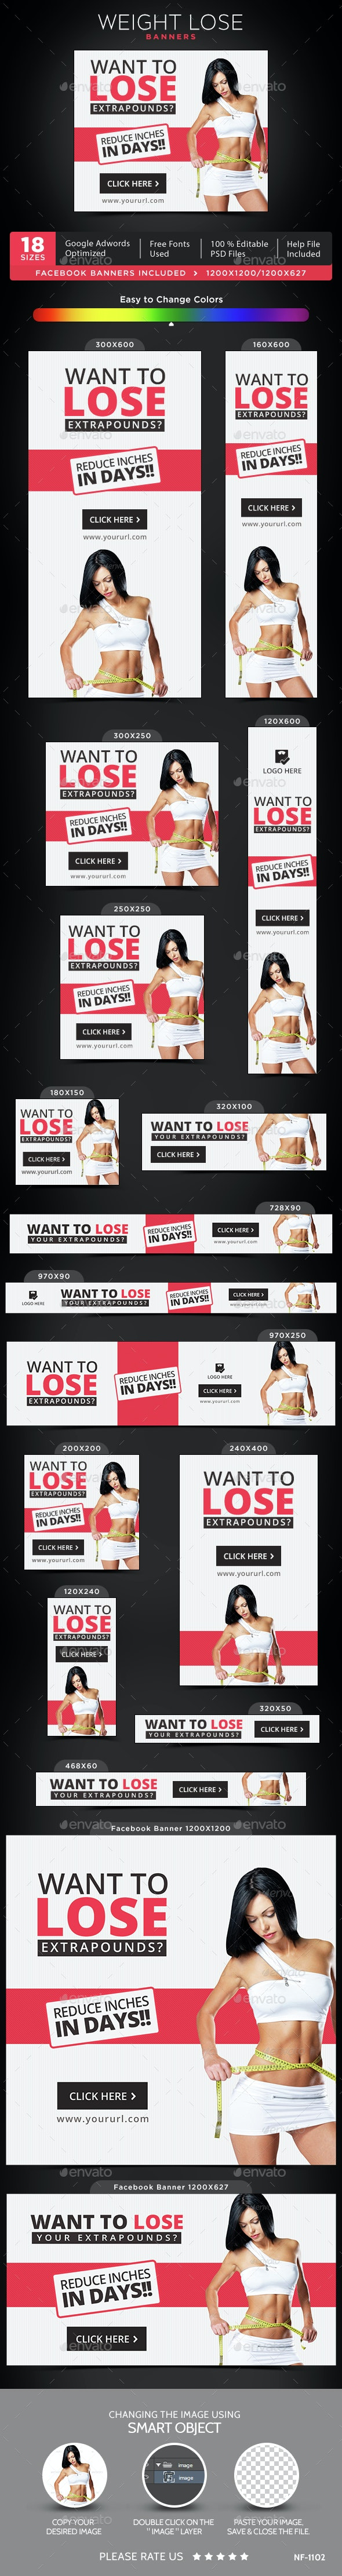 Weight Loss Banners - Banners & Ads Web Elements